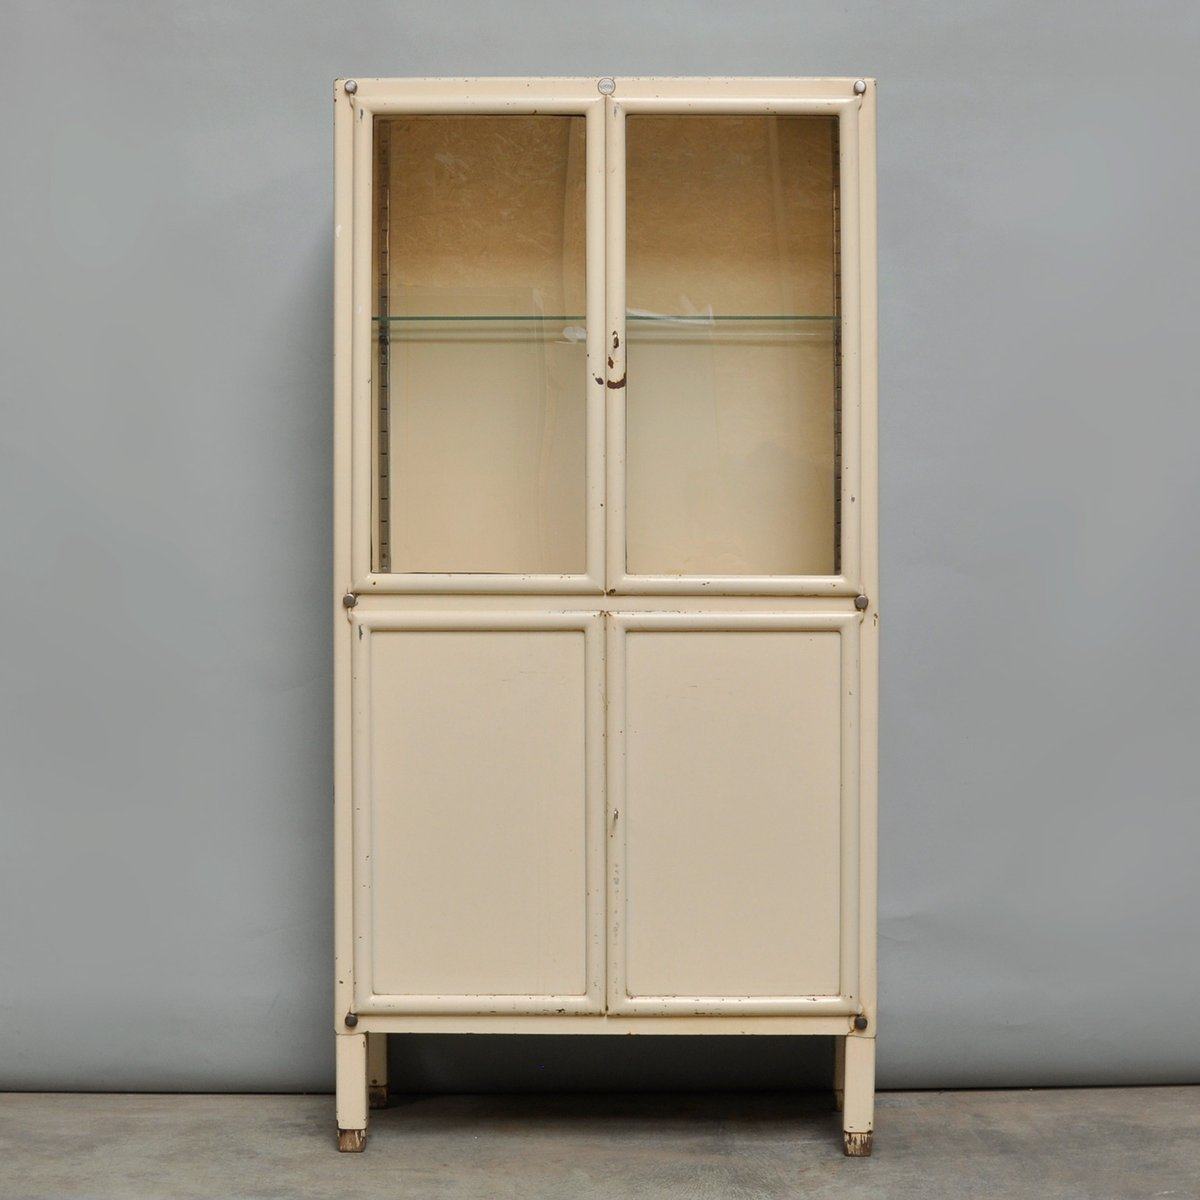 armoire pharmacie vintage en fer de kovona 1950s en vente sur pamono. Black Bedroom Furniture Sets. Home Design Ideas